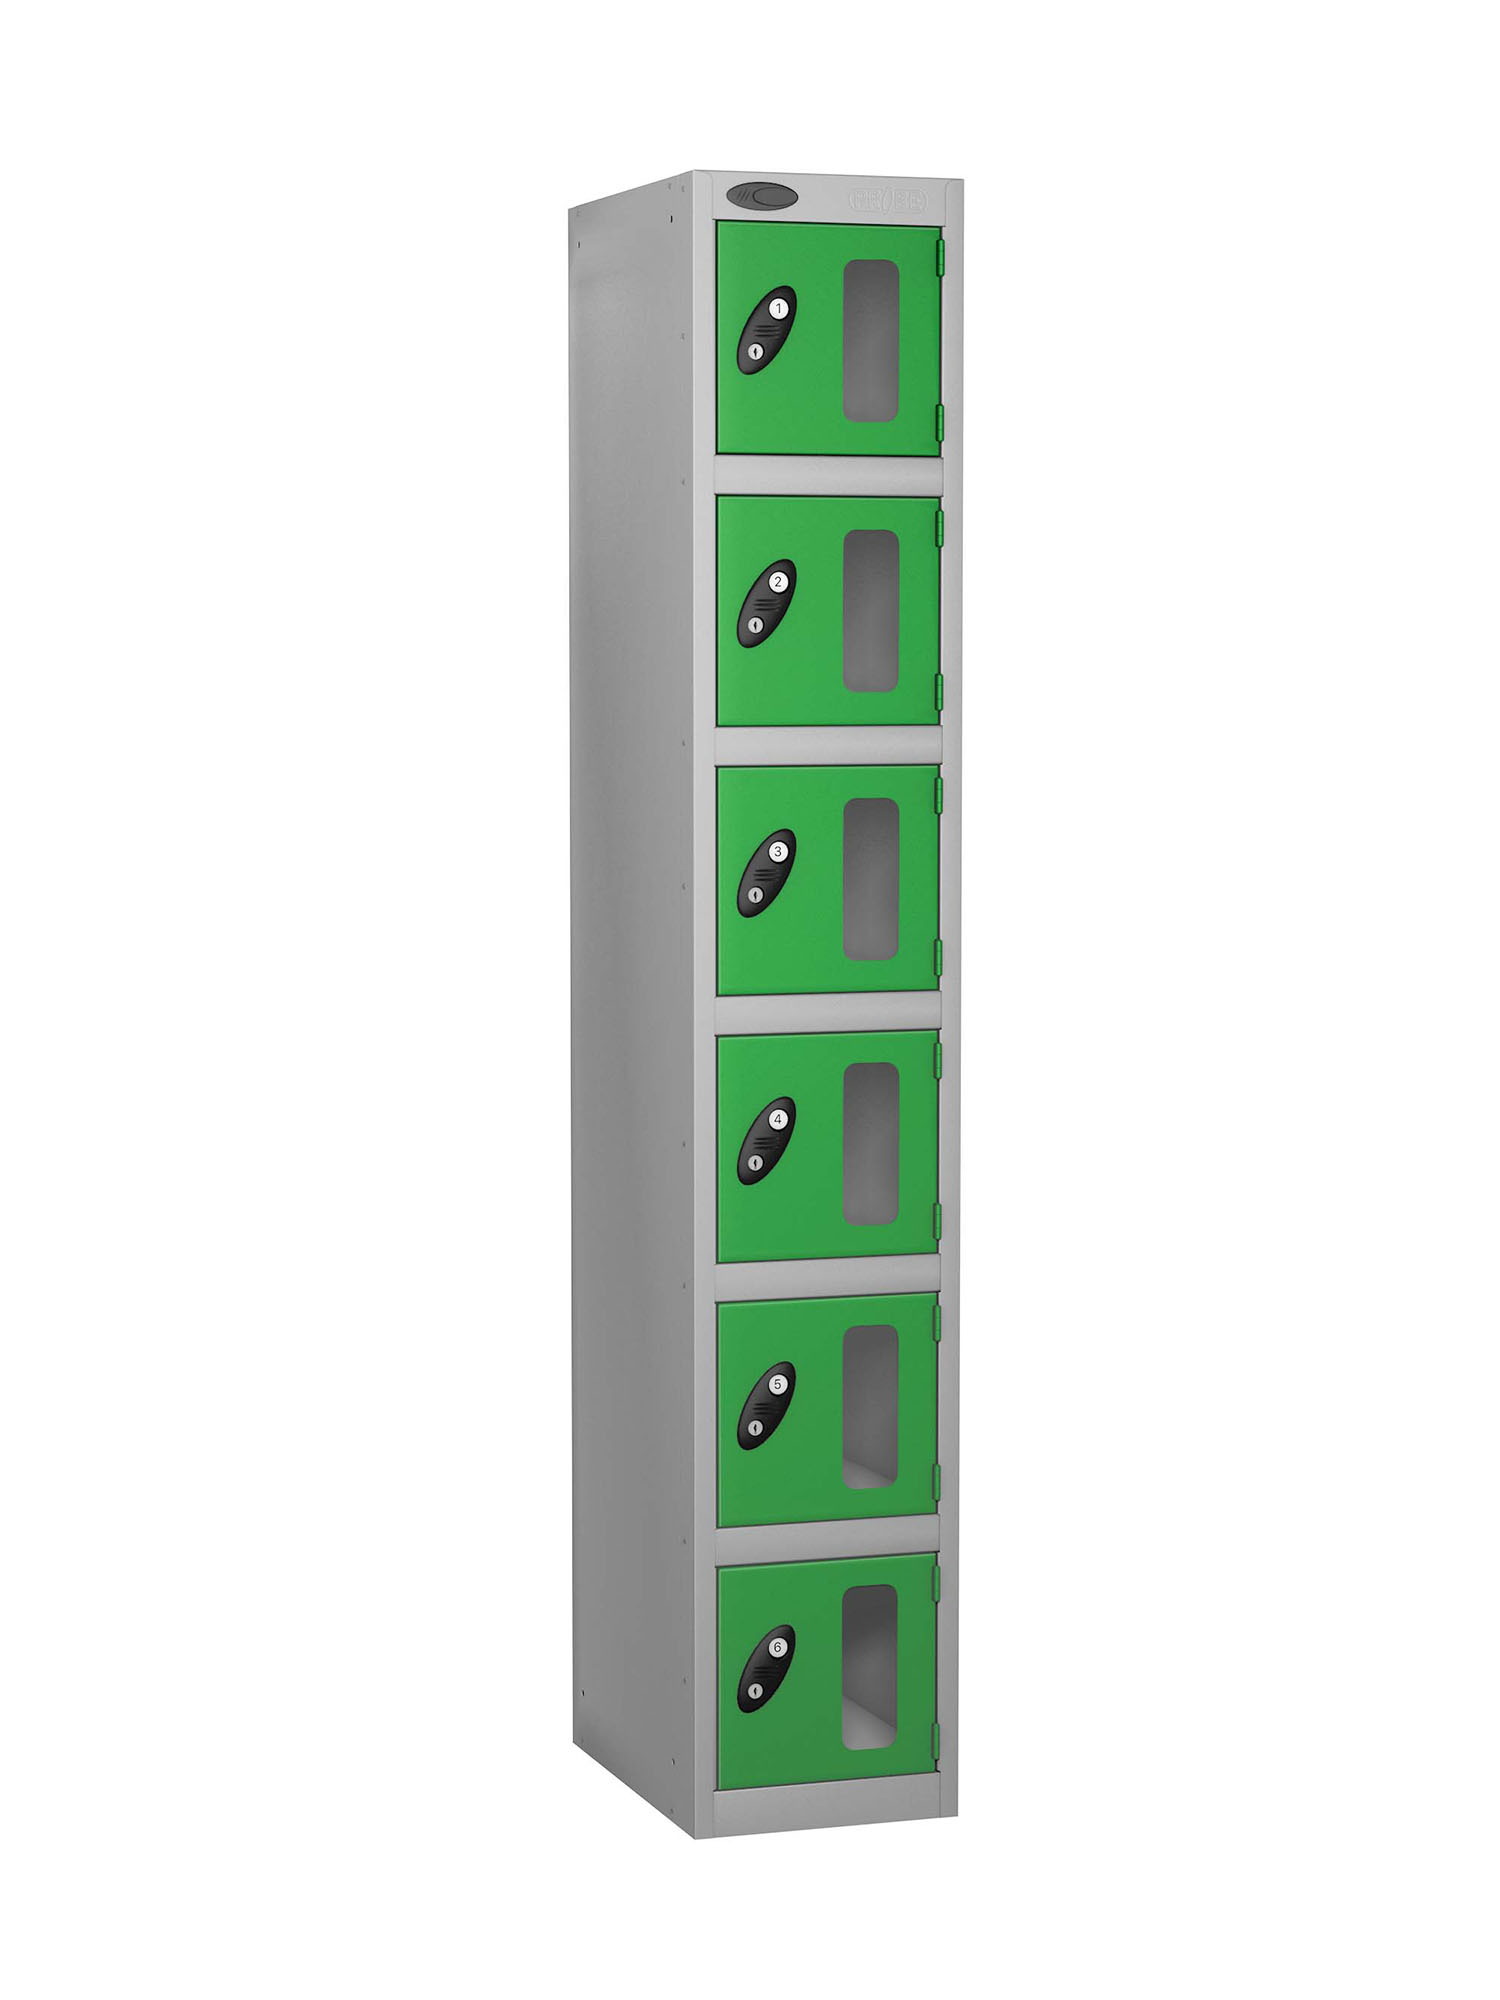 Probe 6 doors vision panel anti-stock theft locker green